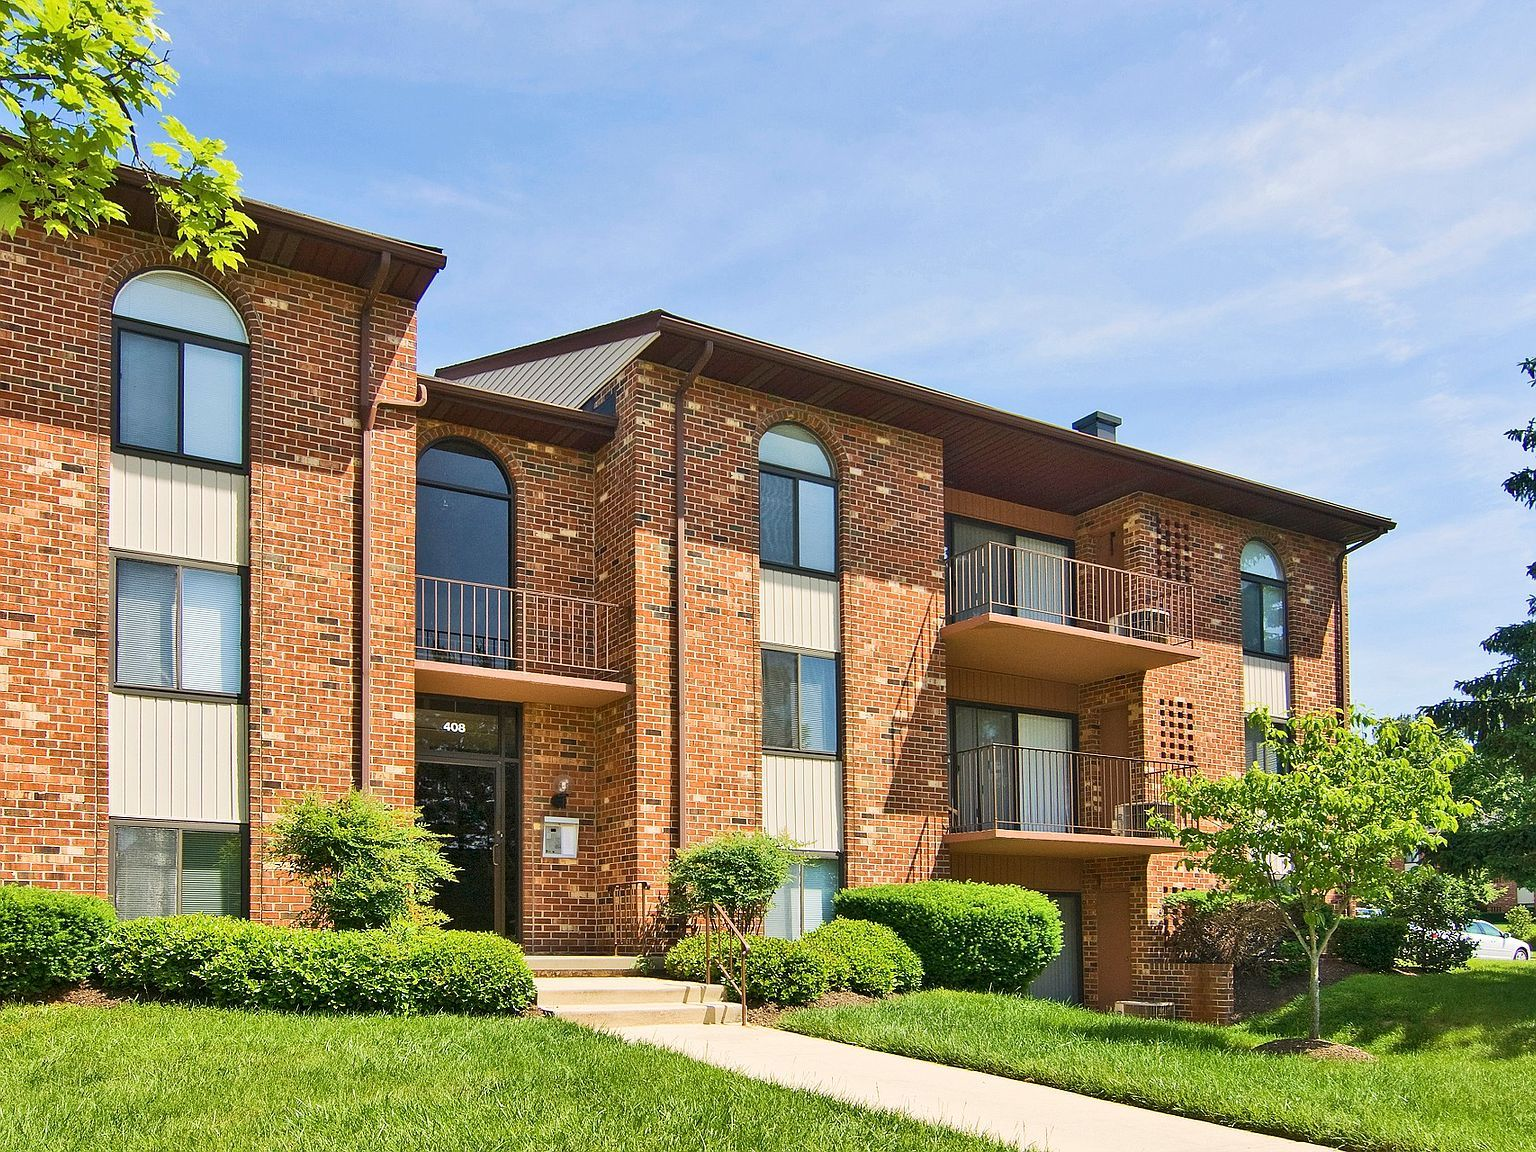 For rent 1,774. Caton House Apartments in Catonsville